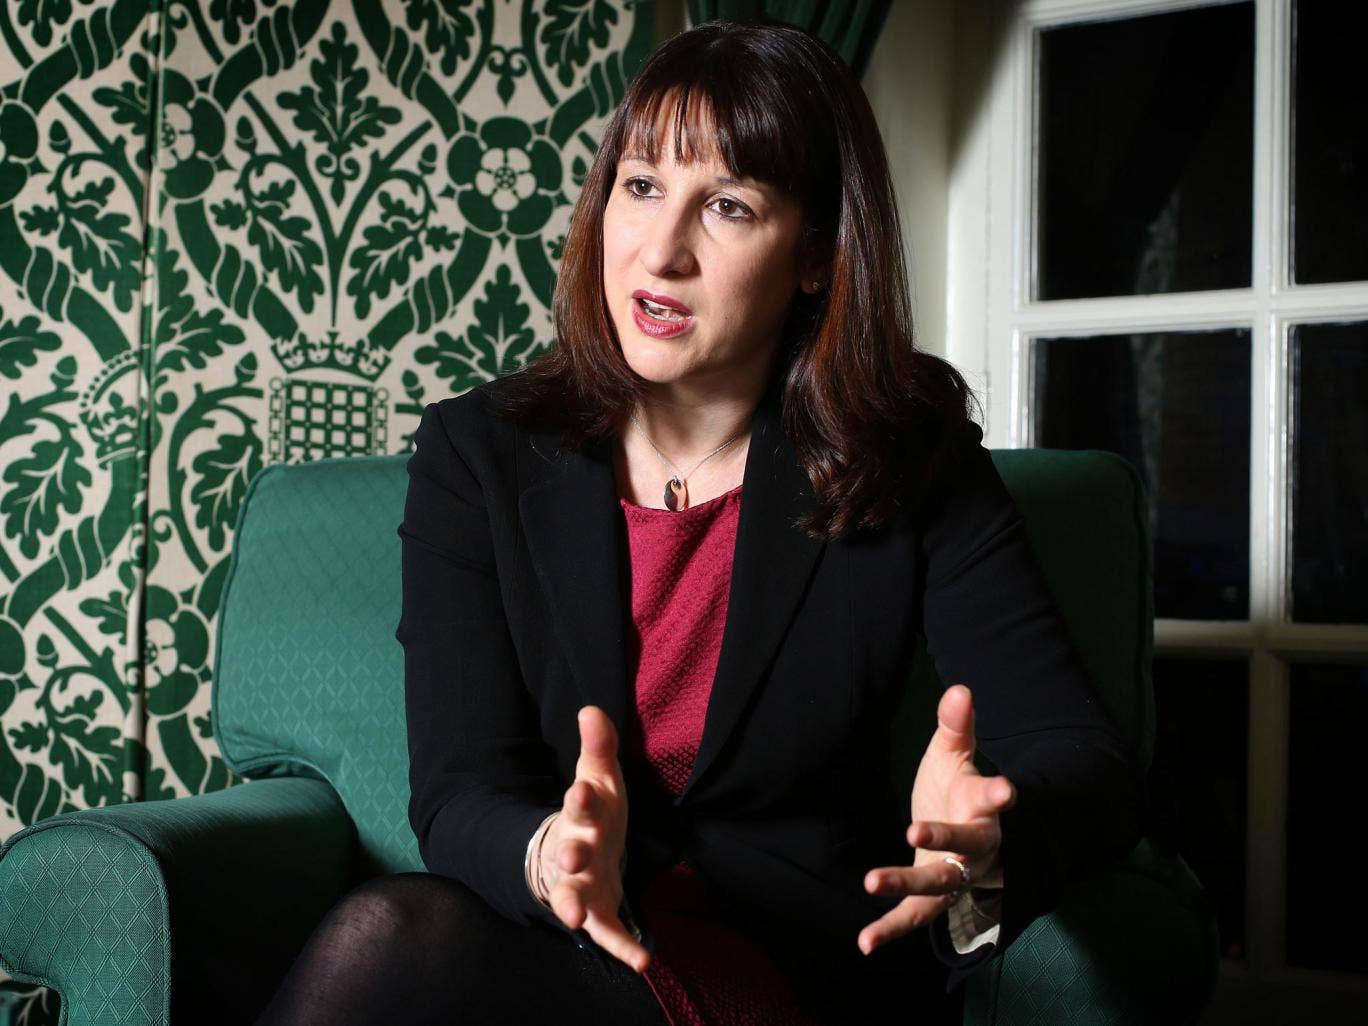 The shadow work and pensions secretary Rachel Reeves says the benefits system is broken